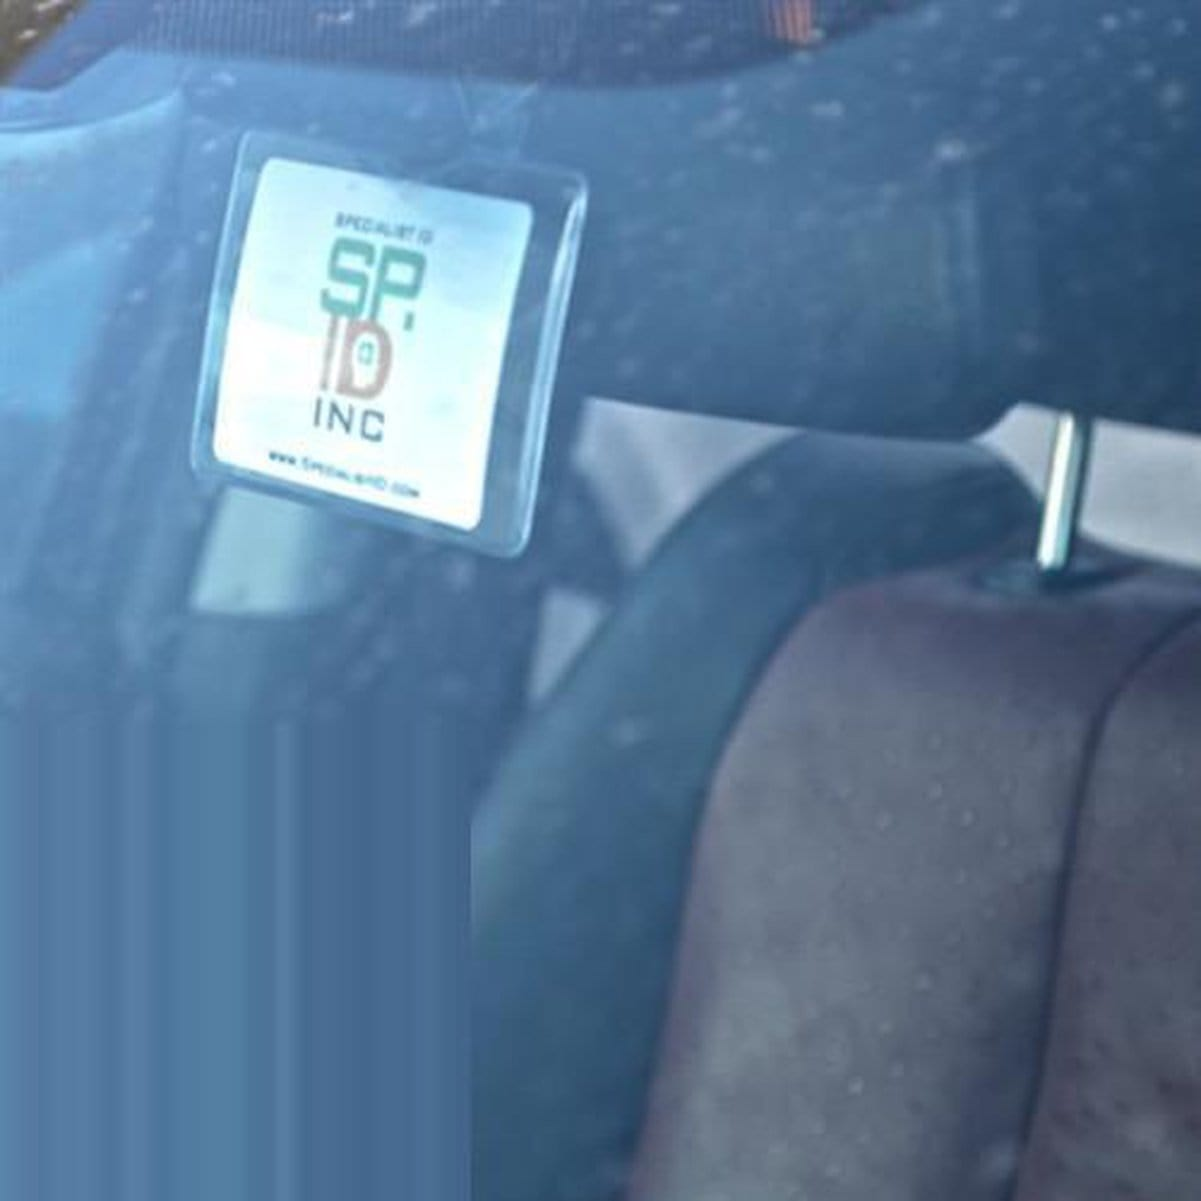 Hang tag holder shown through car windshield handing on rear view mirror